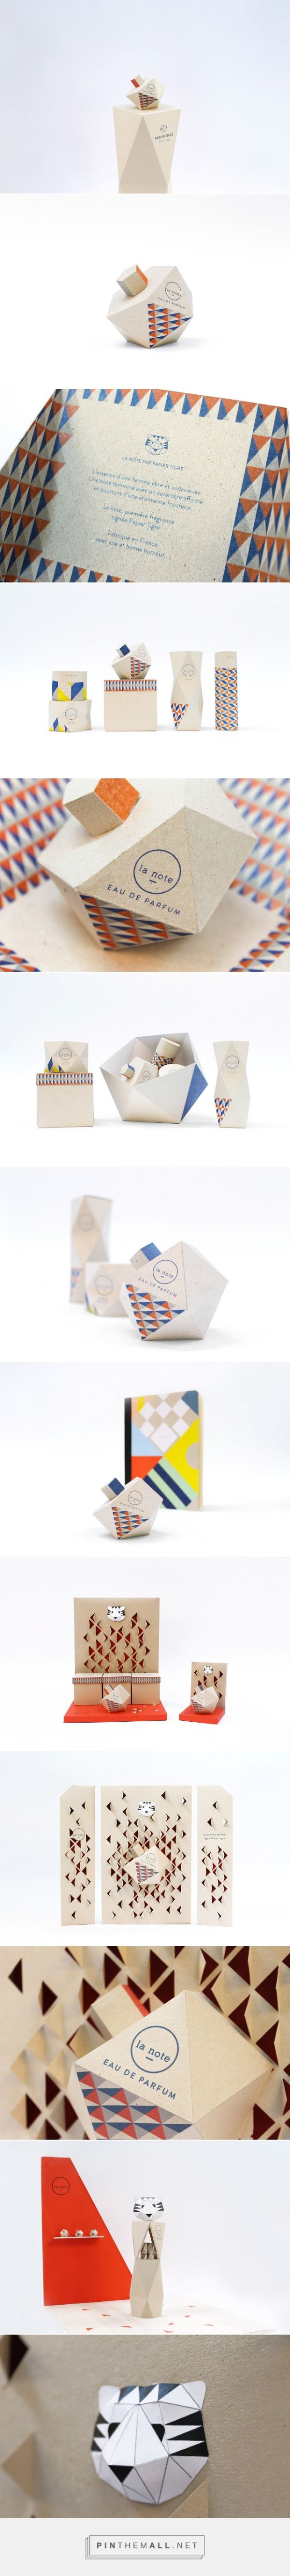 #Paper Tigre #student #concept #stationery #packaging designed by Julie Ferrieux, Marine Giraud and Mathilde Laffon - http://www.packagingoftheworld.com/2015/06/paper-tigre-student-project.html